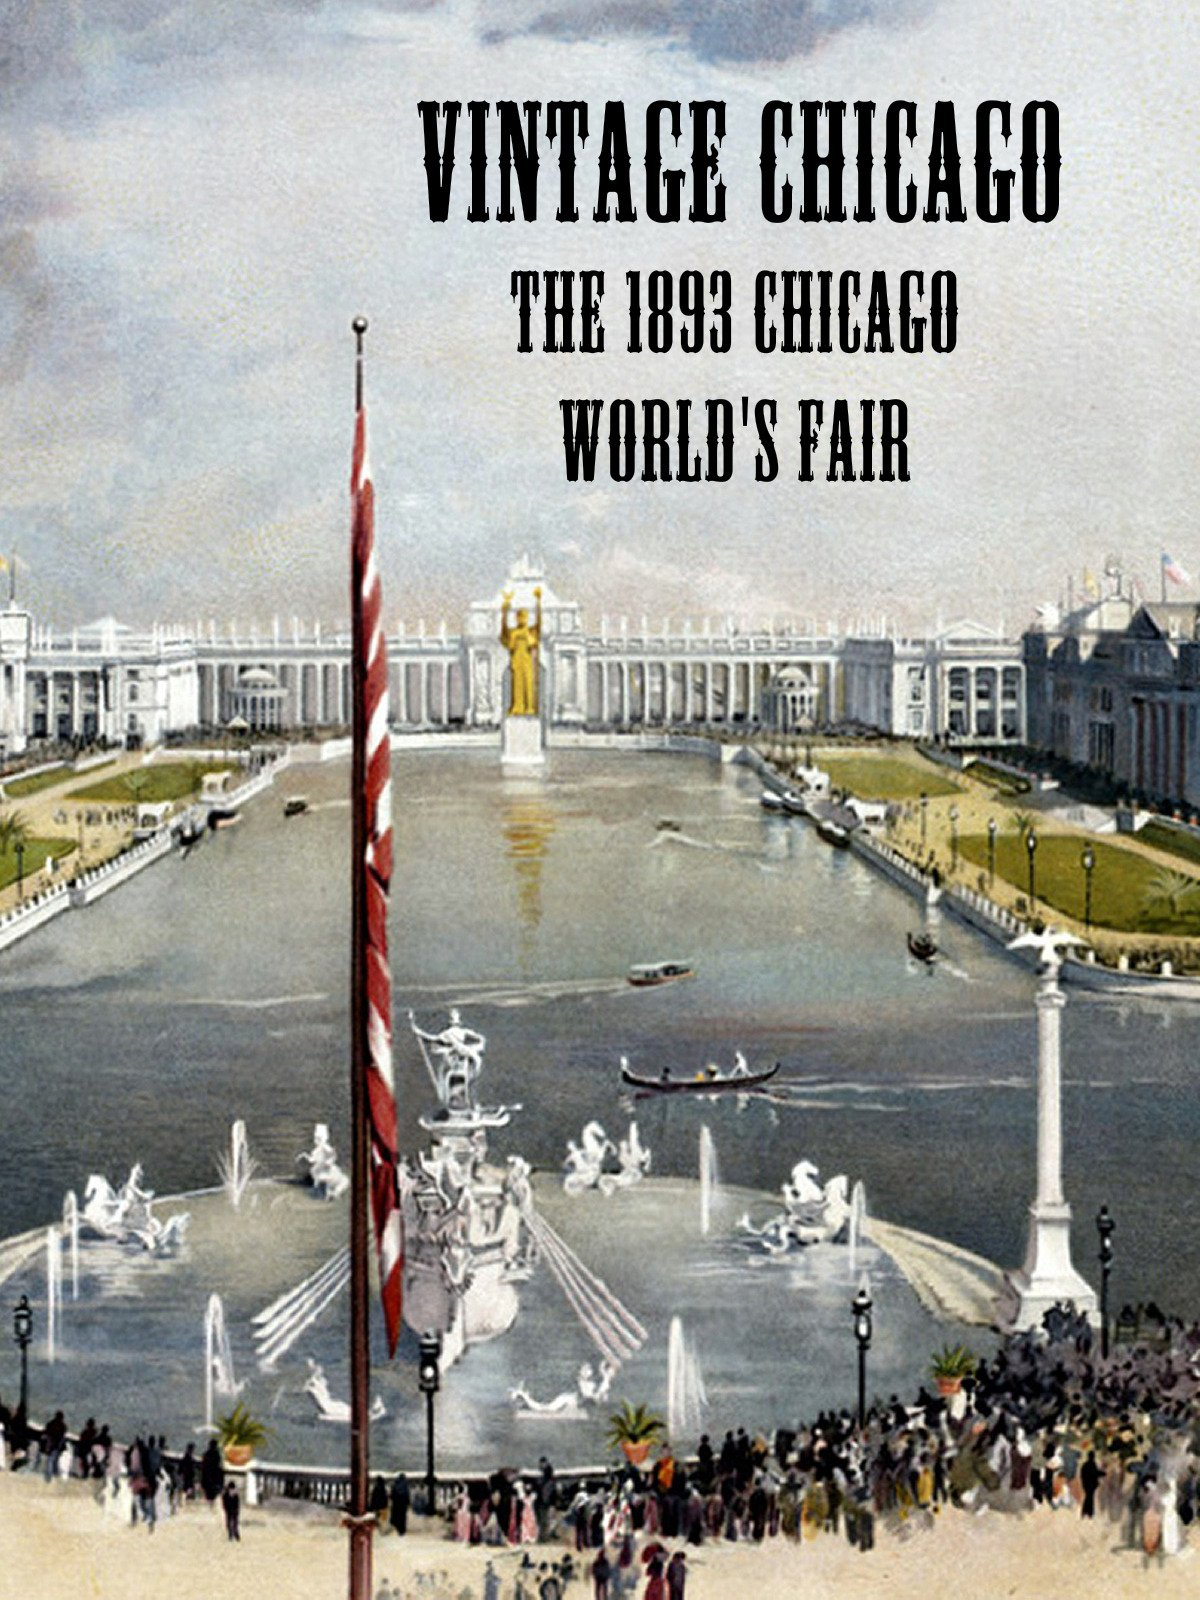 Vintage Chicago: The 1893 Chicago World's Fair